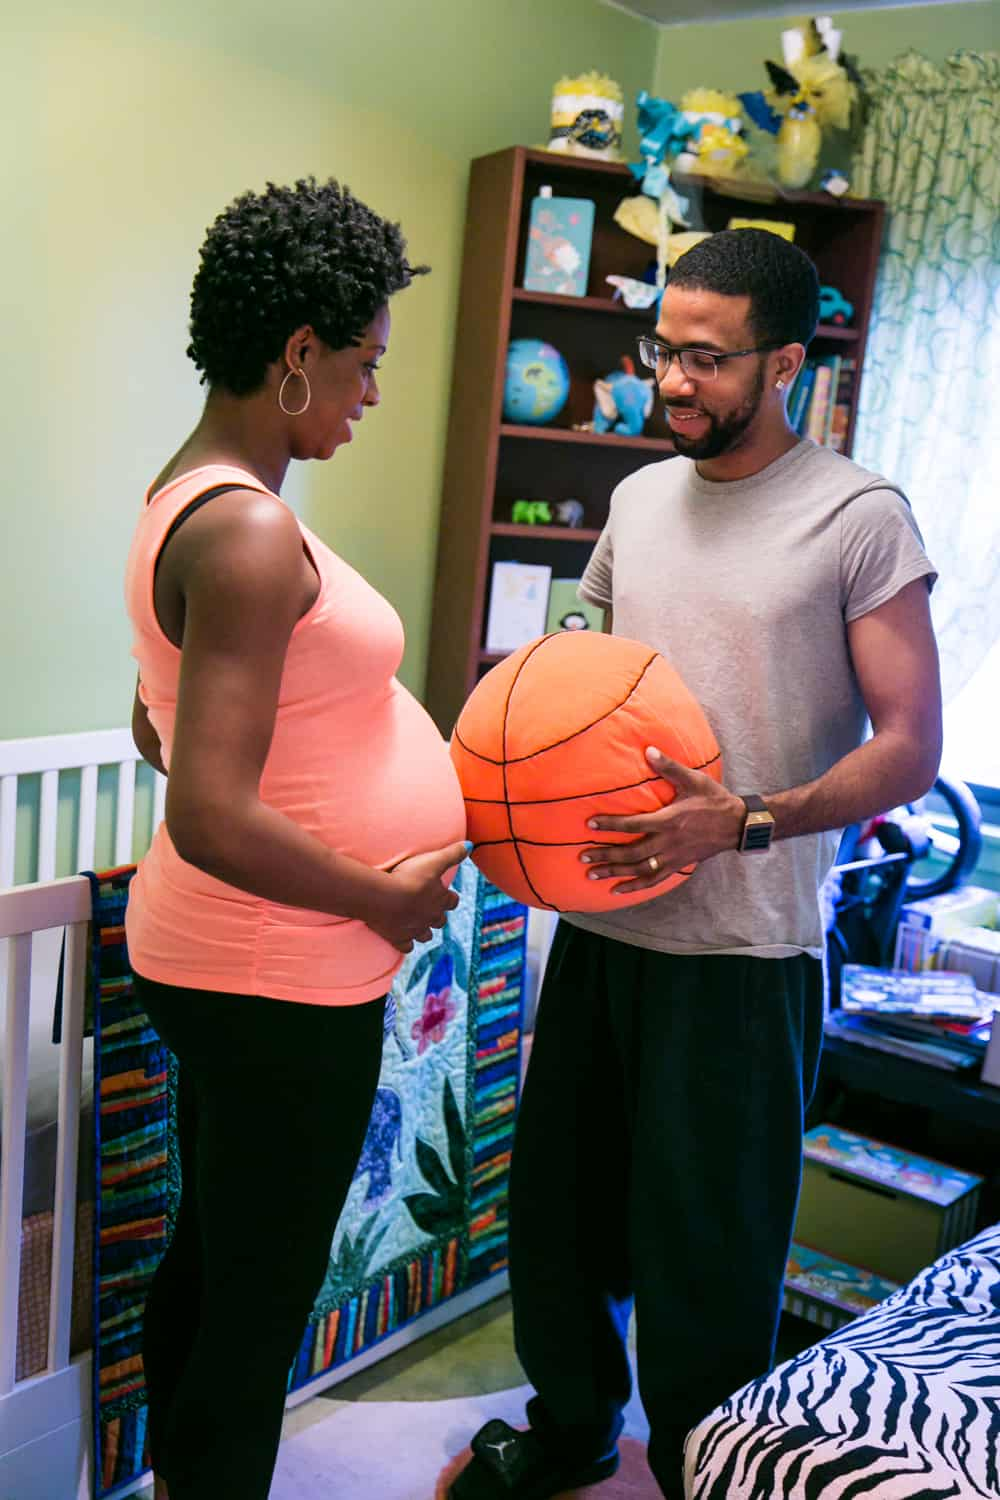 Parents-to-be comparing pregnant stomach to stuffed basketball by Queens maternity photographer